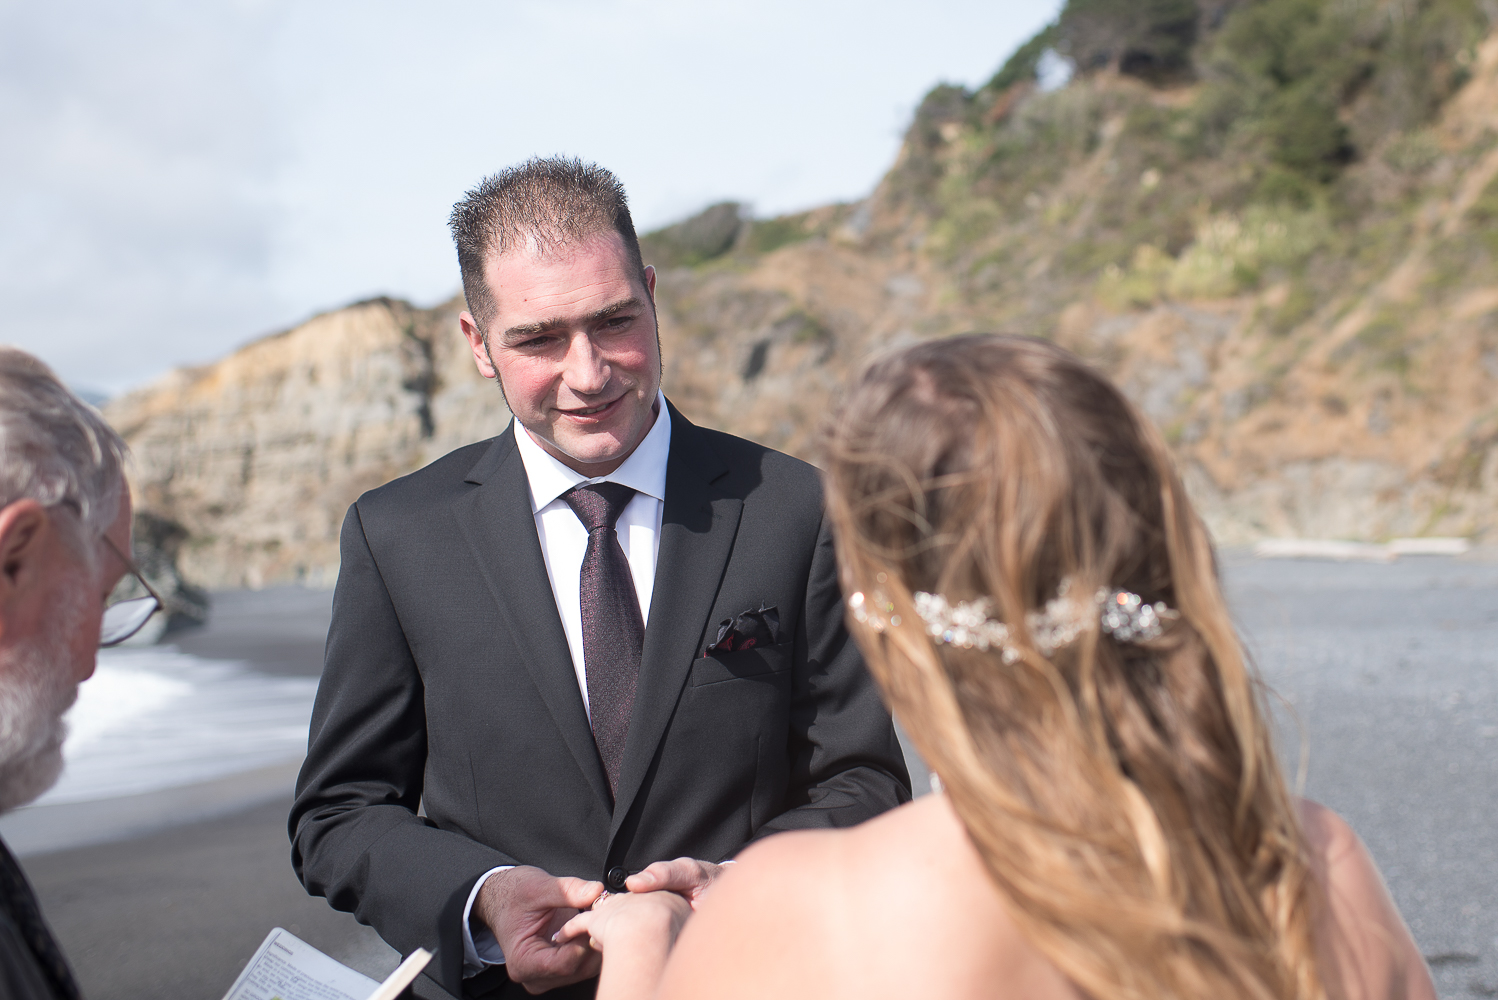 Shelter Cove-Intimate Destination beach Wedding-Parky's Pics Photography-Humboldt County_-12.jpg